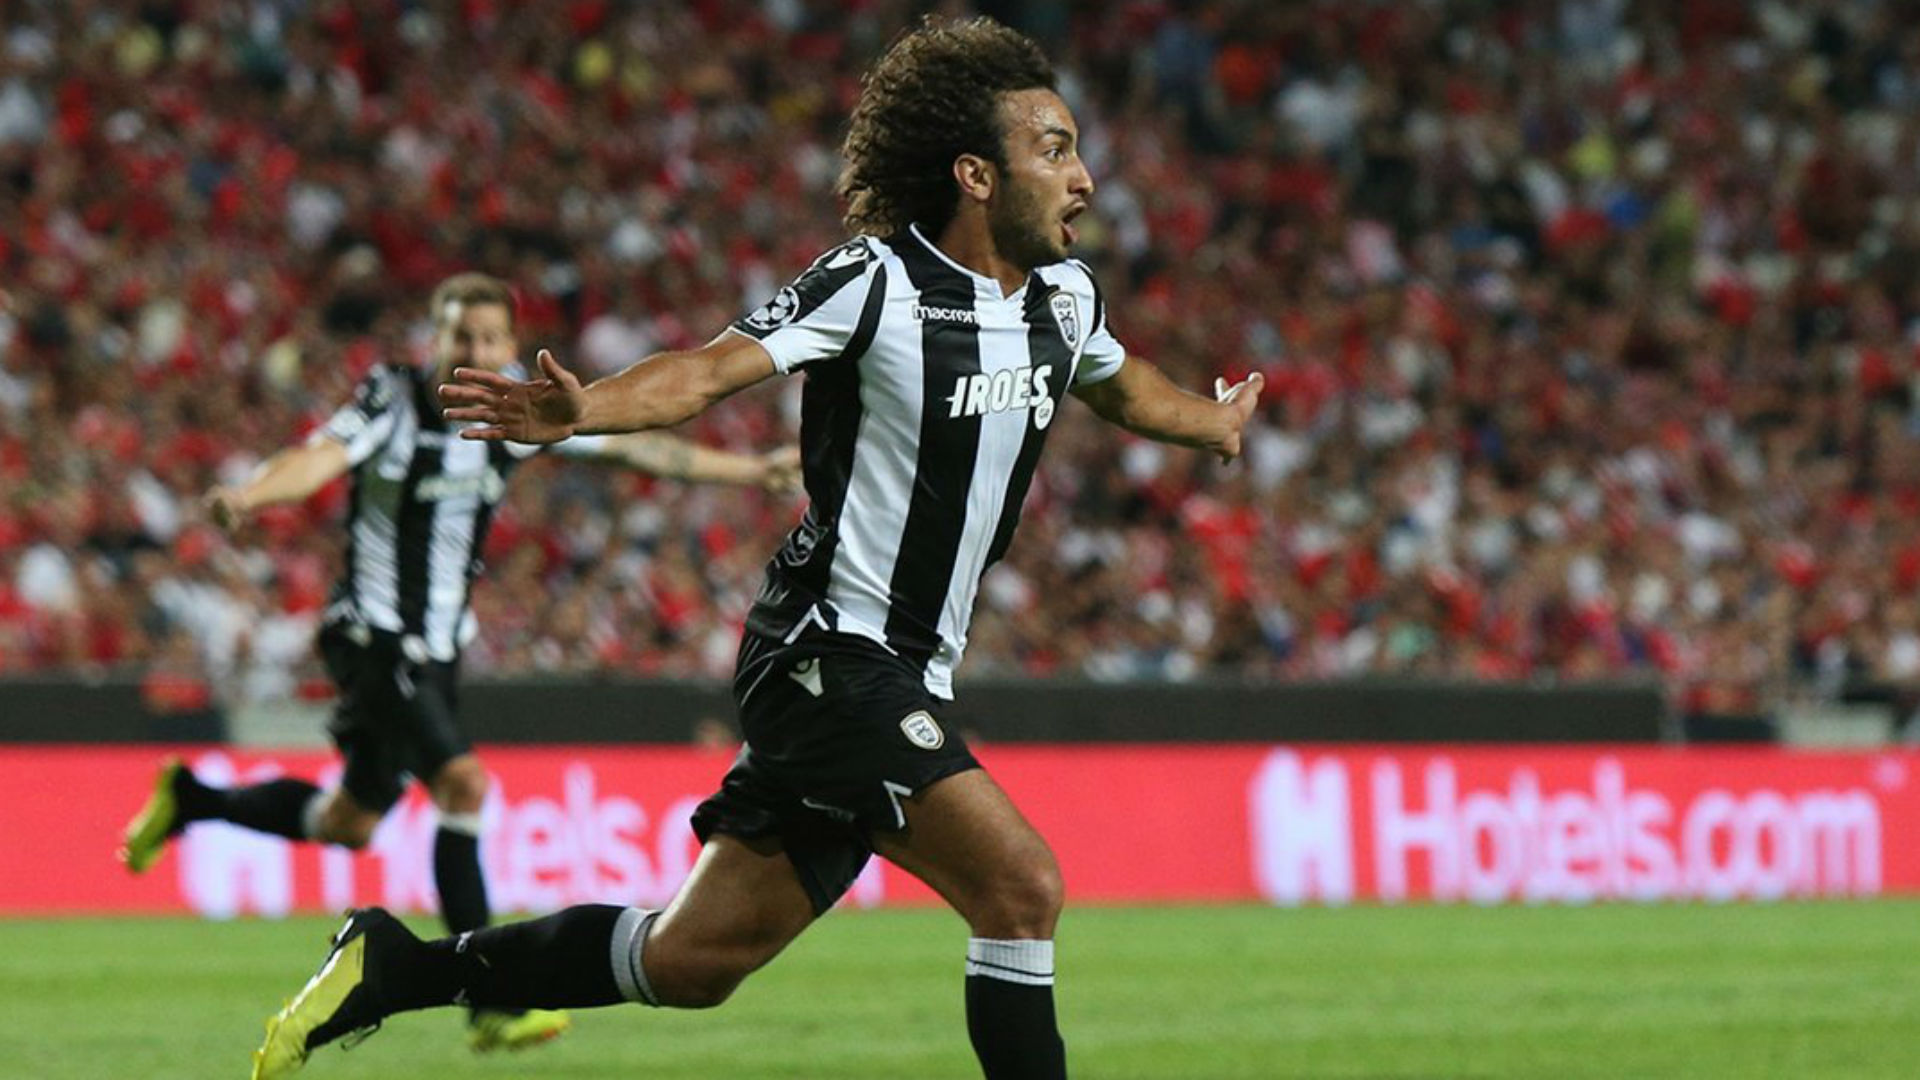 Amr Warda rejoins PAOK Thessaloniki from Volos FC